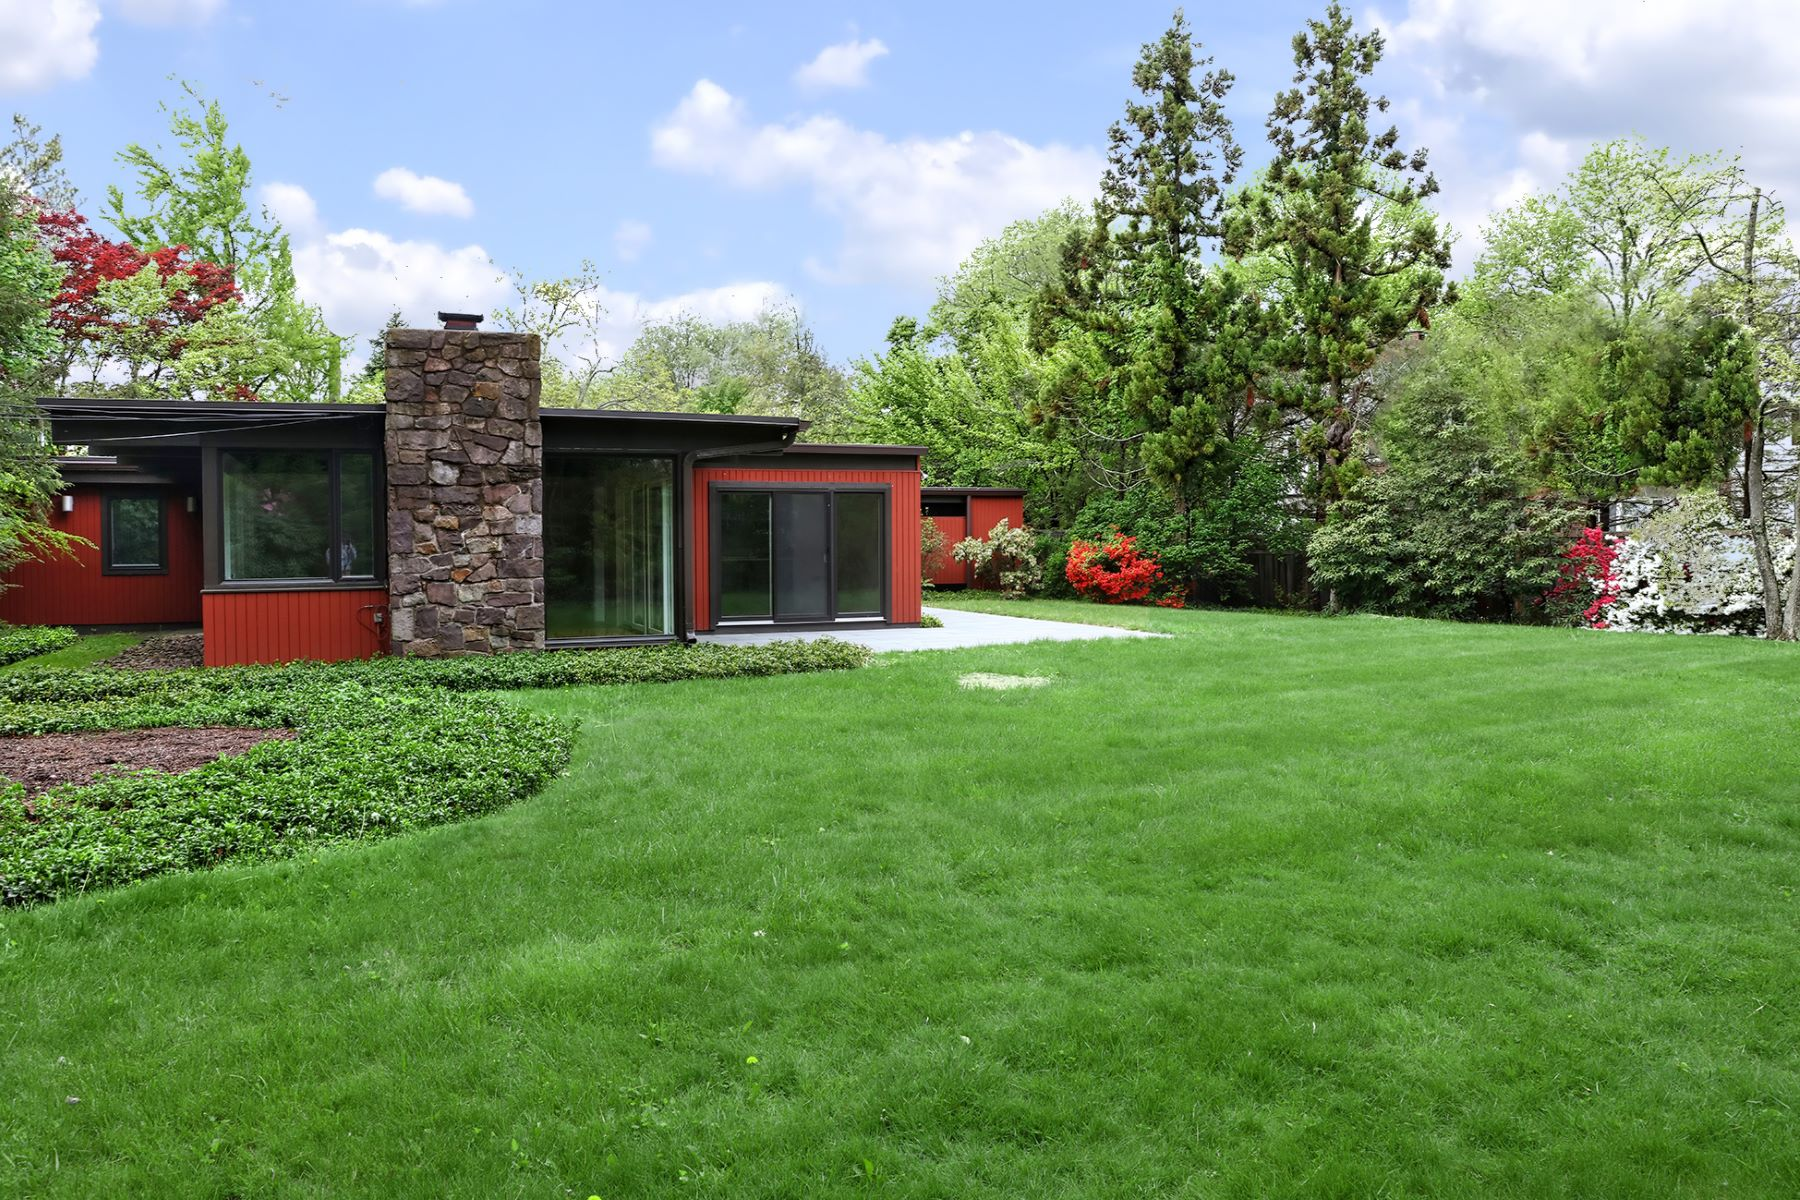 Additional photo for property listing at Iconic Mid-Century Modern Home 9 Orchard Circle, Princeton, New Jersey 08540 United States